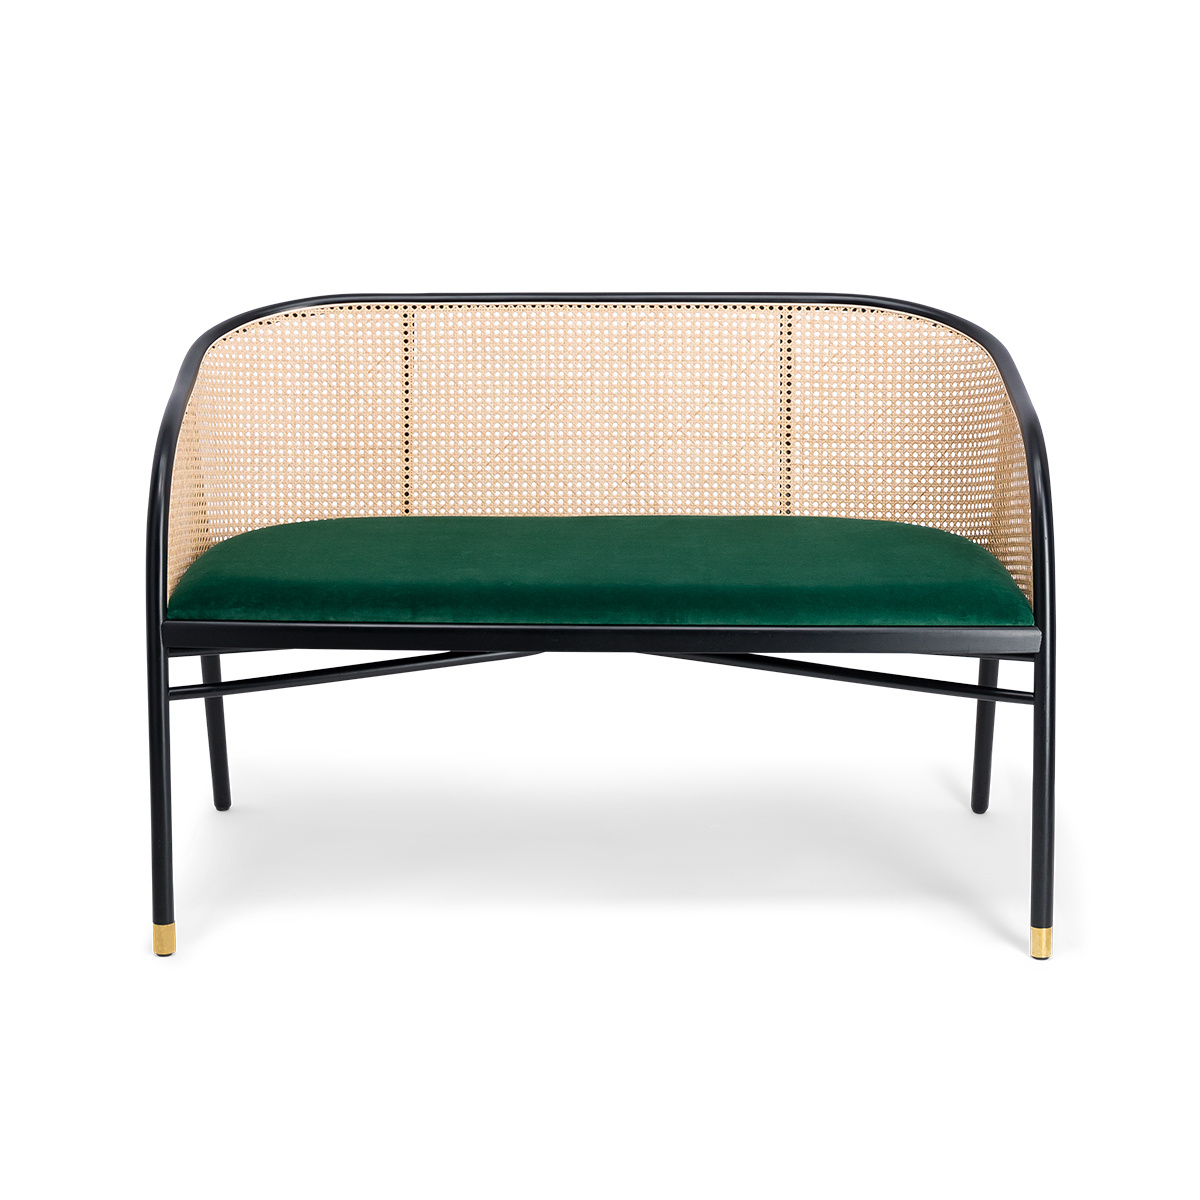 Incredible Cavallo Sofa Fir Green Velvet With Black Lacquered Beech Wood Frame And Natural Cane Machost Co Dining Chair Design Ideas Machostcouk